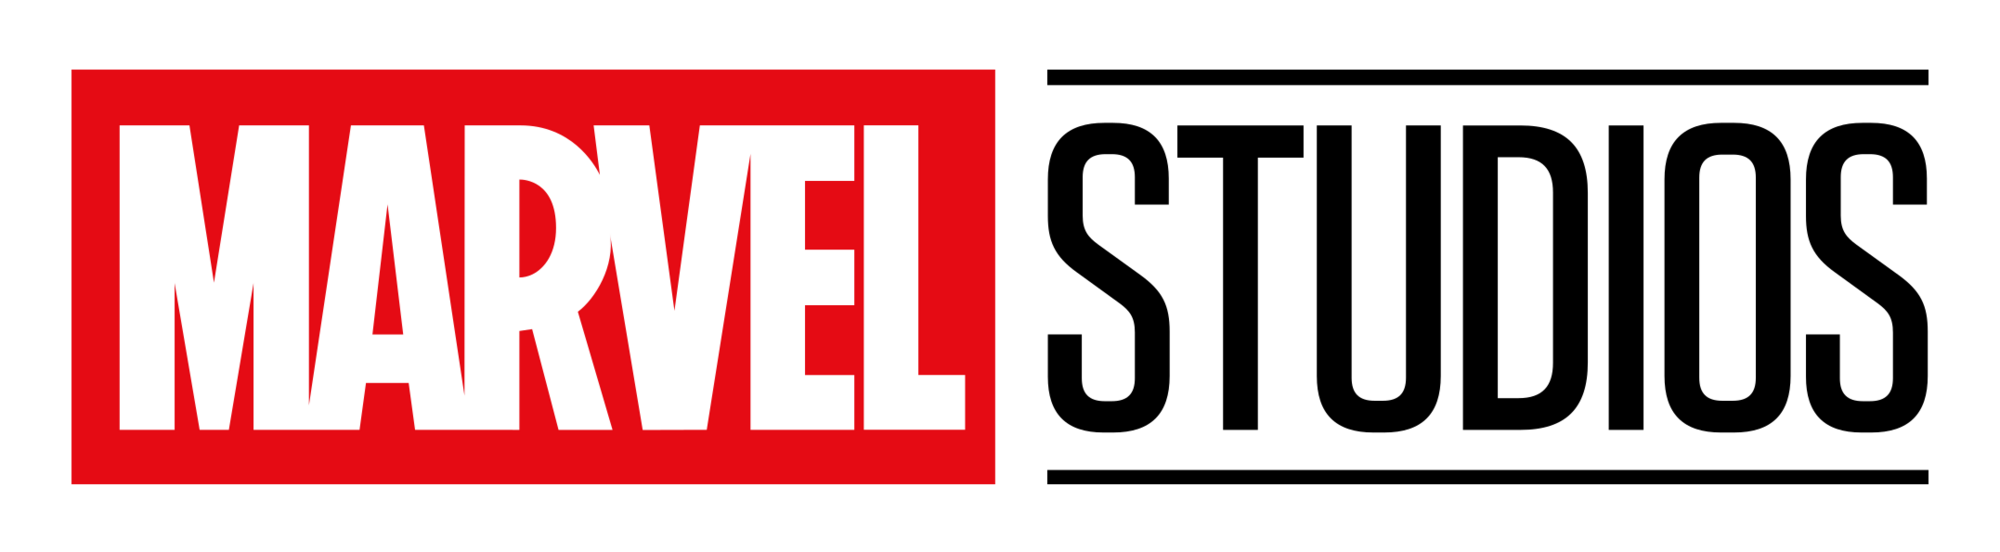 Marvel Studios Disney Wiki Fandom Powered By Wikia